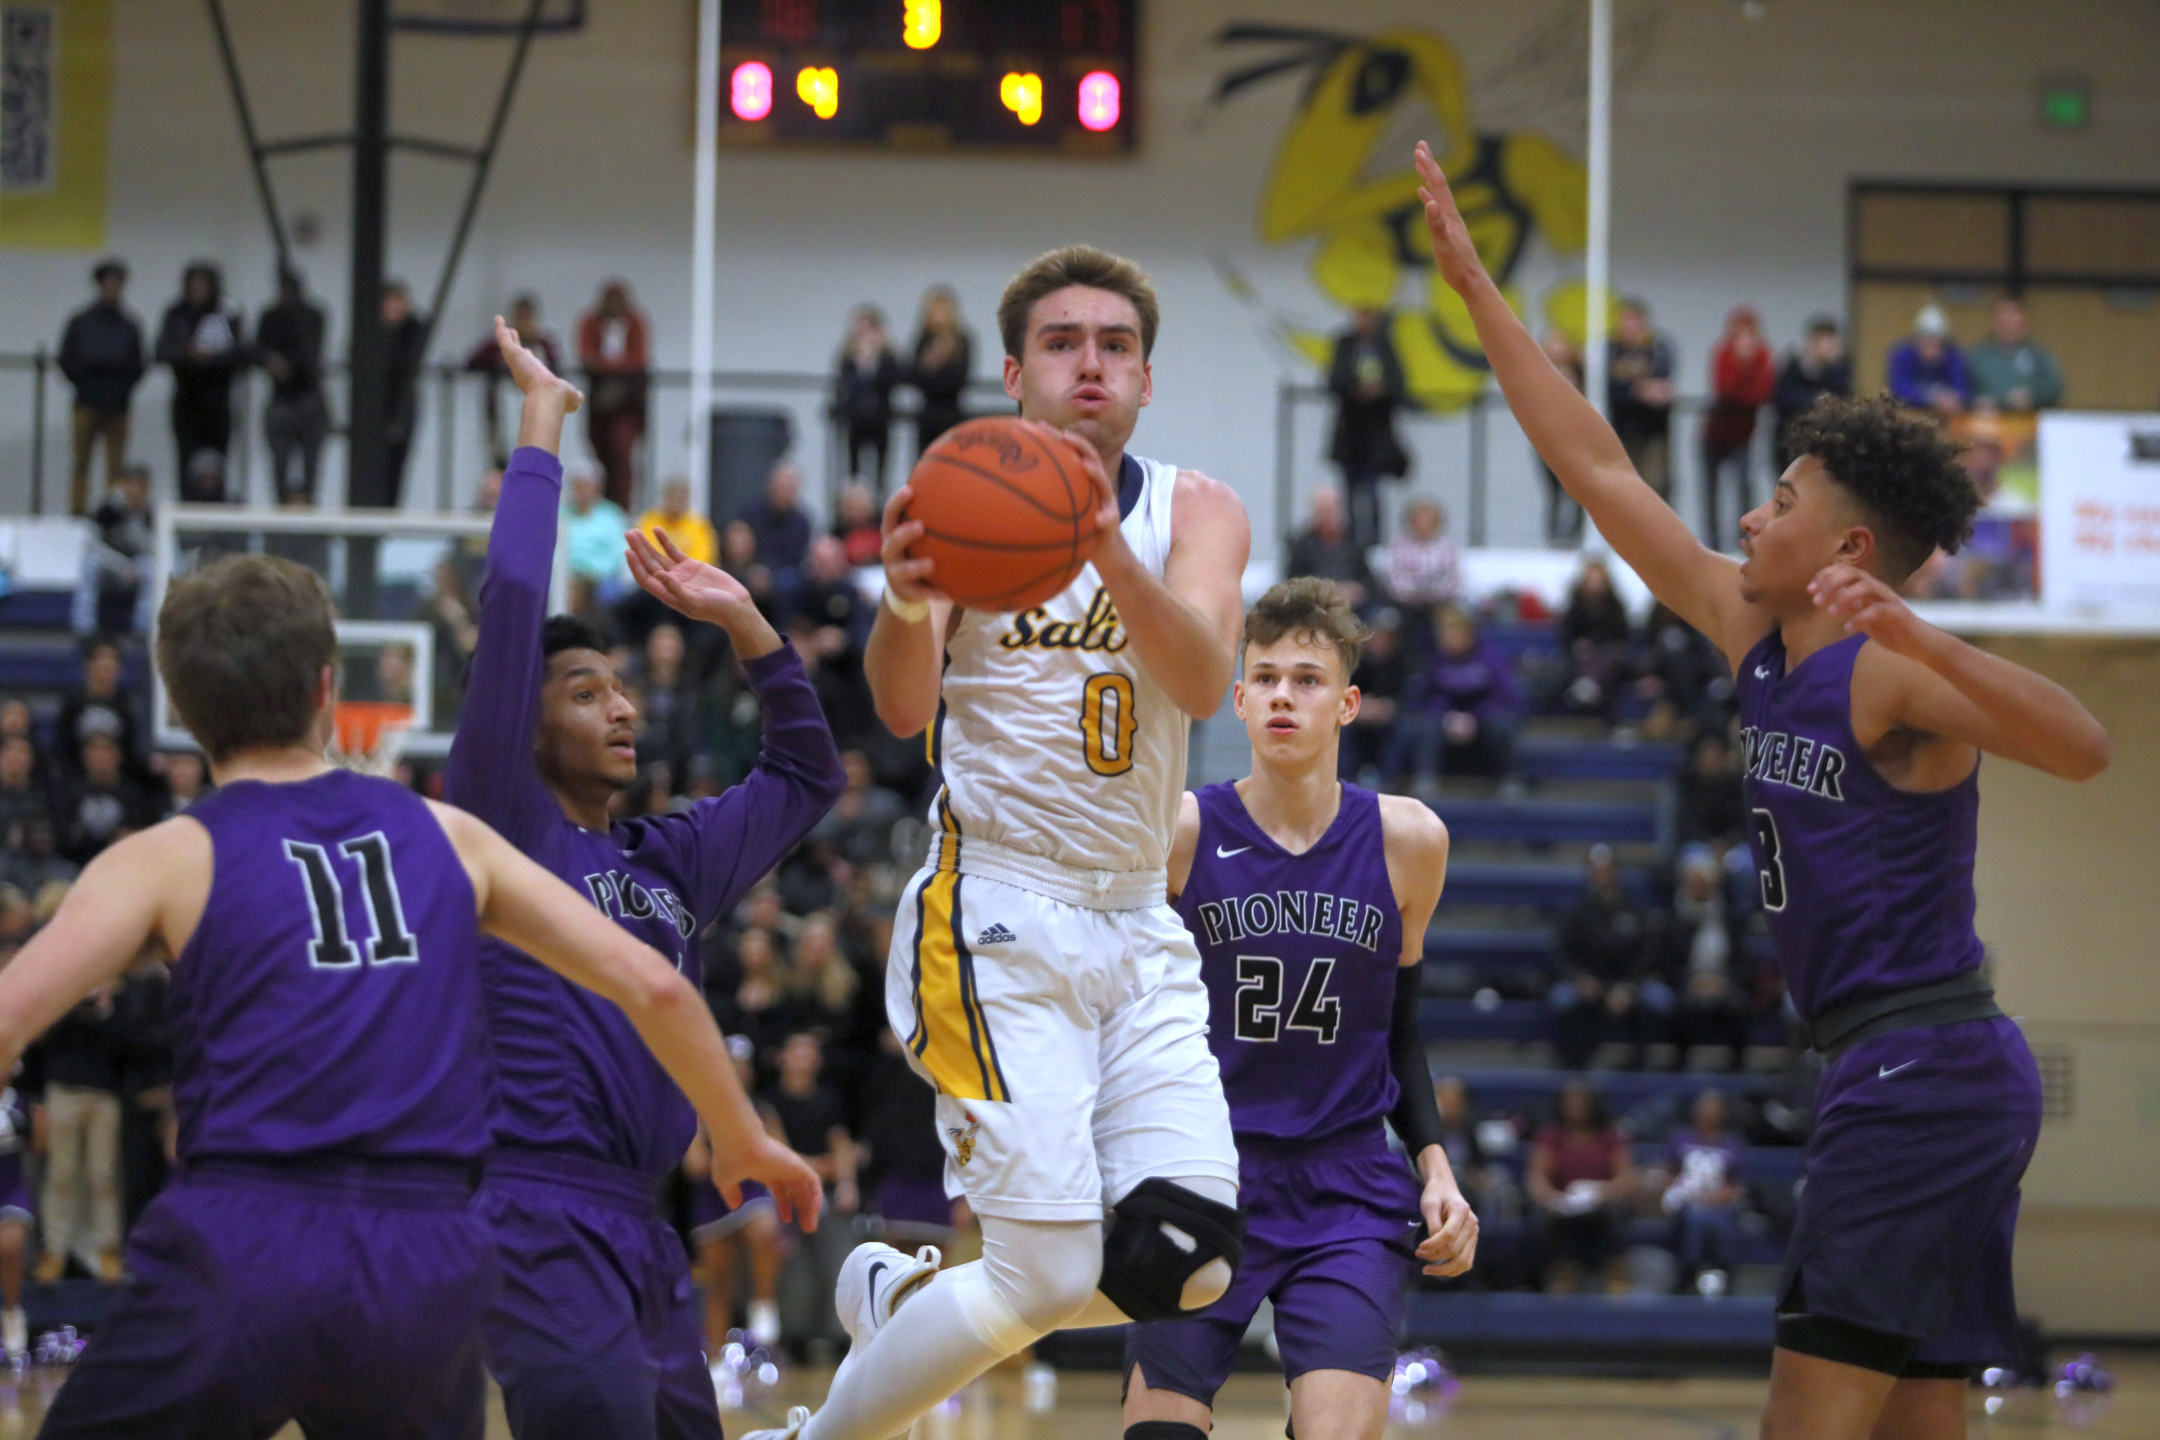 The Saline Post: Foul Trouble Catches Saline in OT Loss to Pioneer